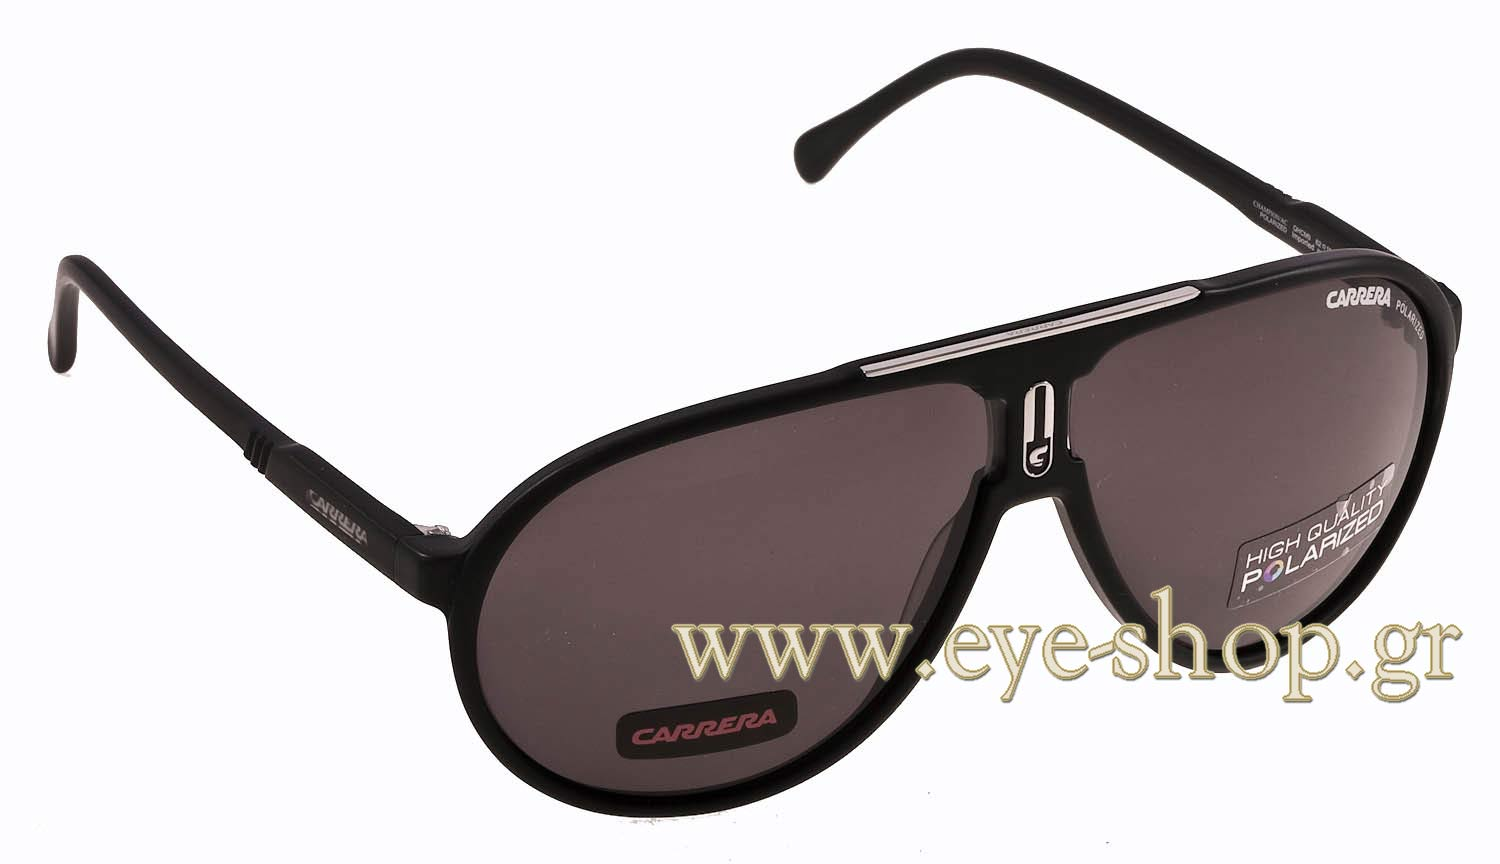 3852b37bbaf SUNGLASSES Carrera CHAMPION  AC QHCM9 Polarized